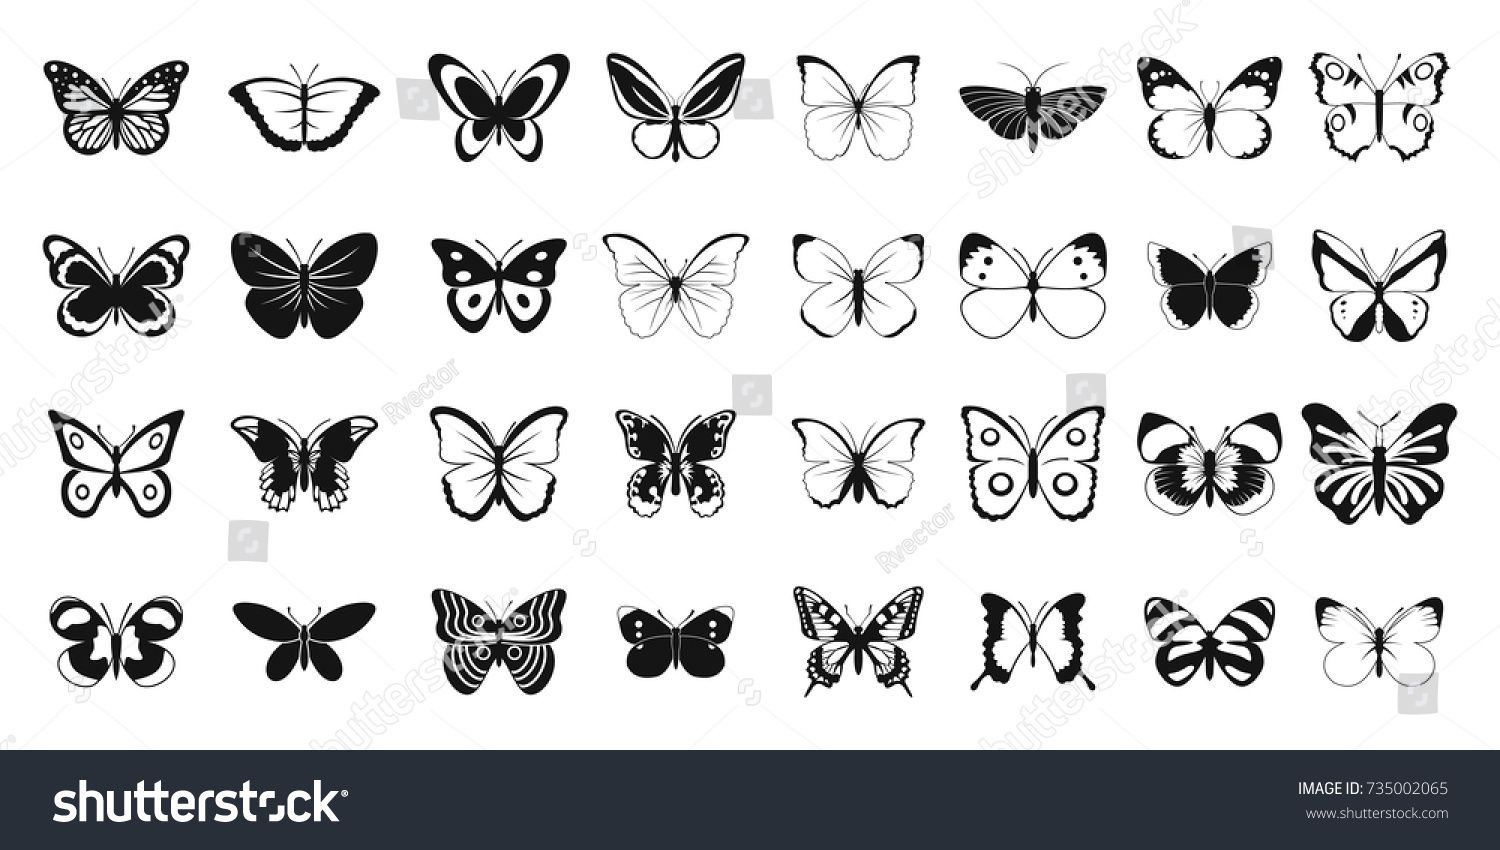 Butterfly Icon Set Simple Set Of Butterfly Vector Icons For Web Design Isolated On White Background Icon Set Butterfly Images Butterflies Vector